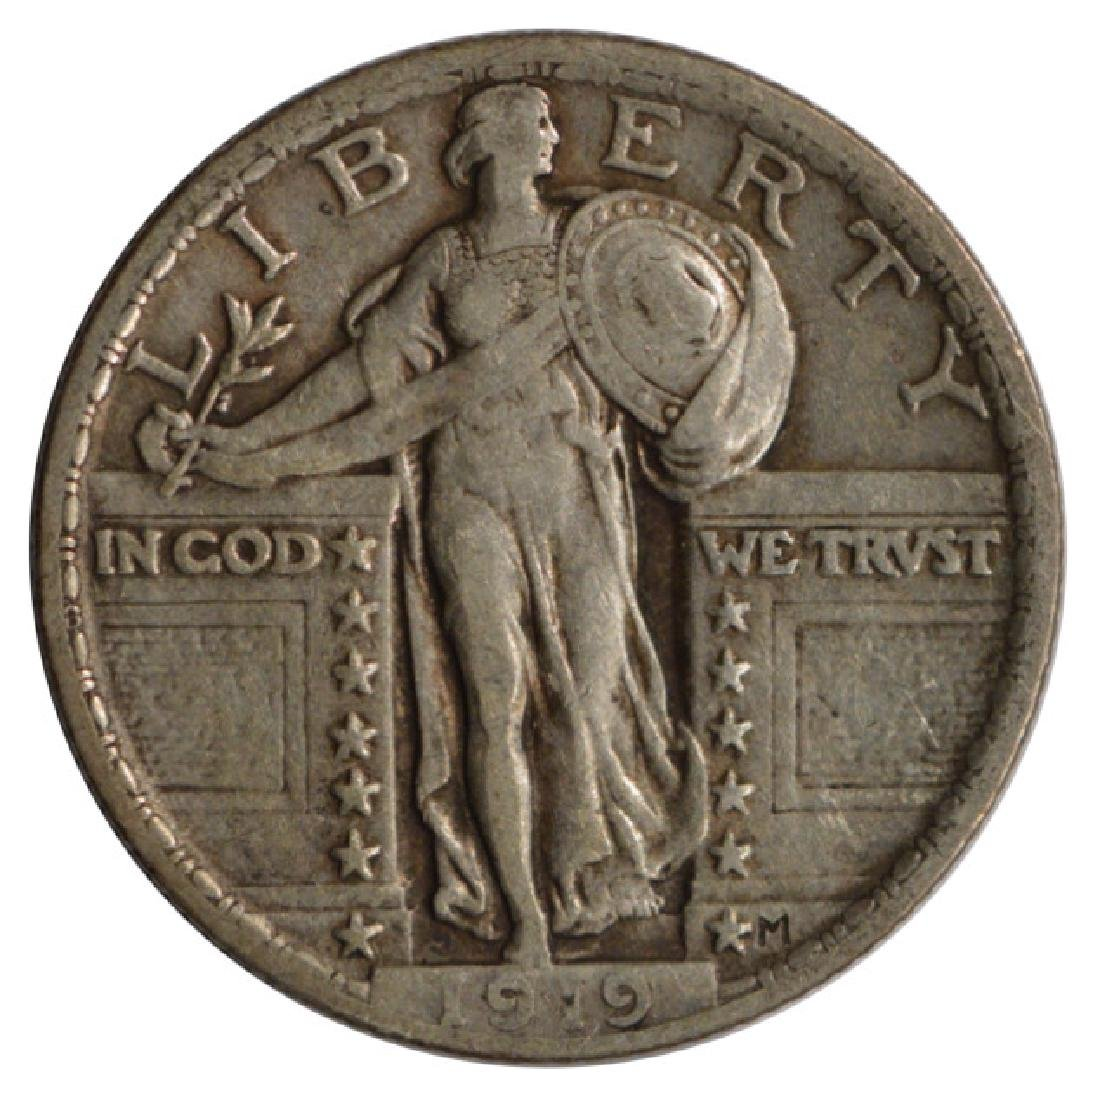 1919 Standing Liberty Quarter Coin